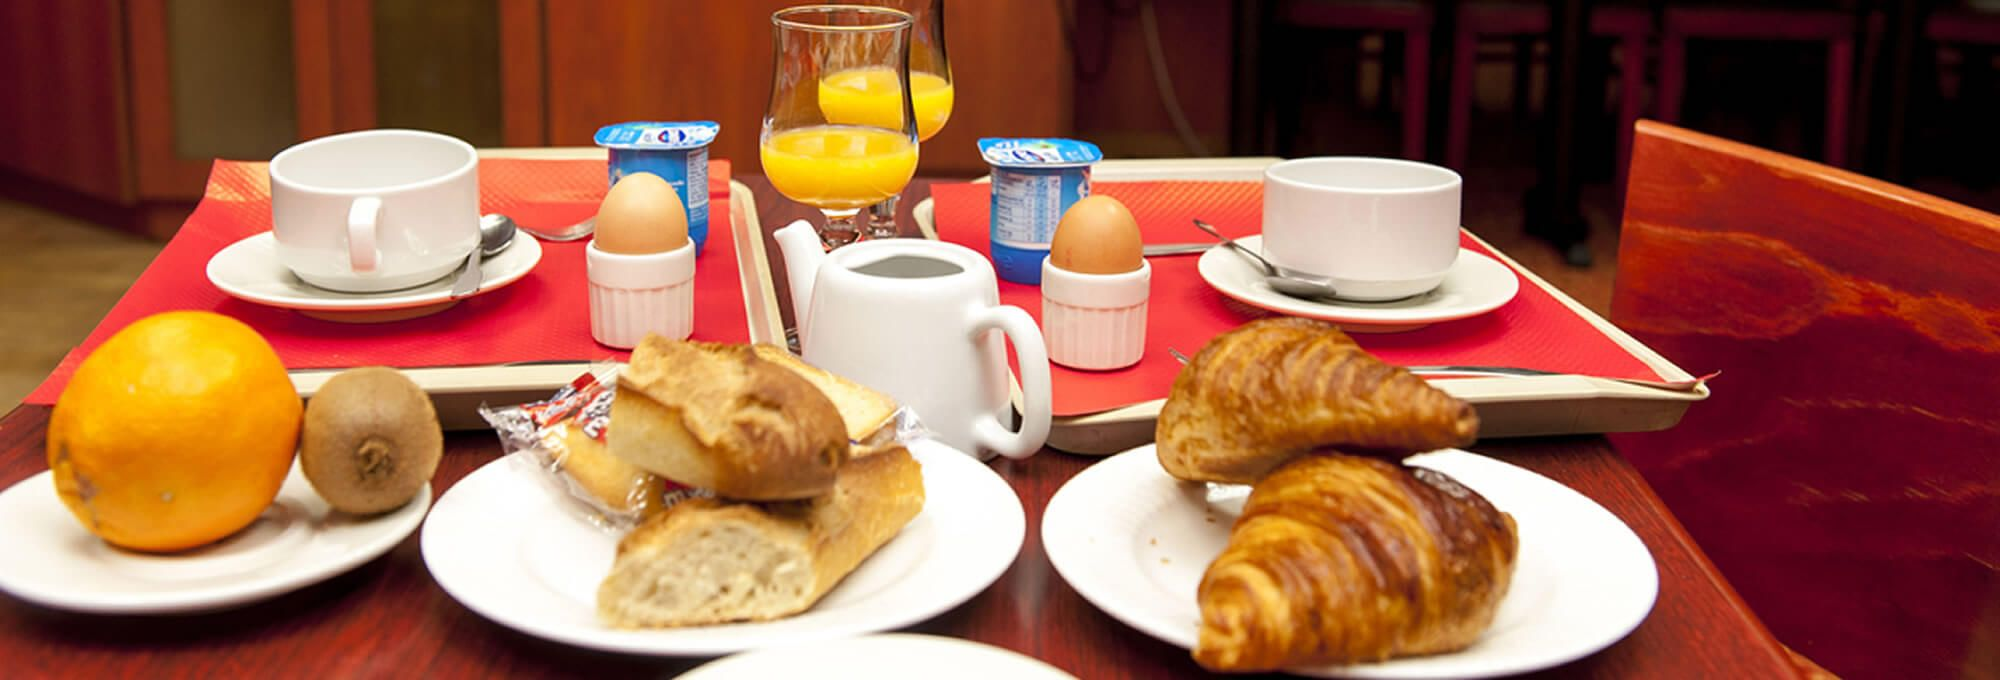 Breakfast at the Hotel d'Agen